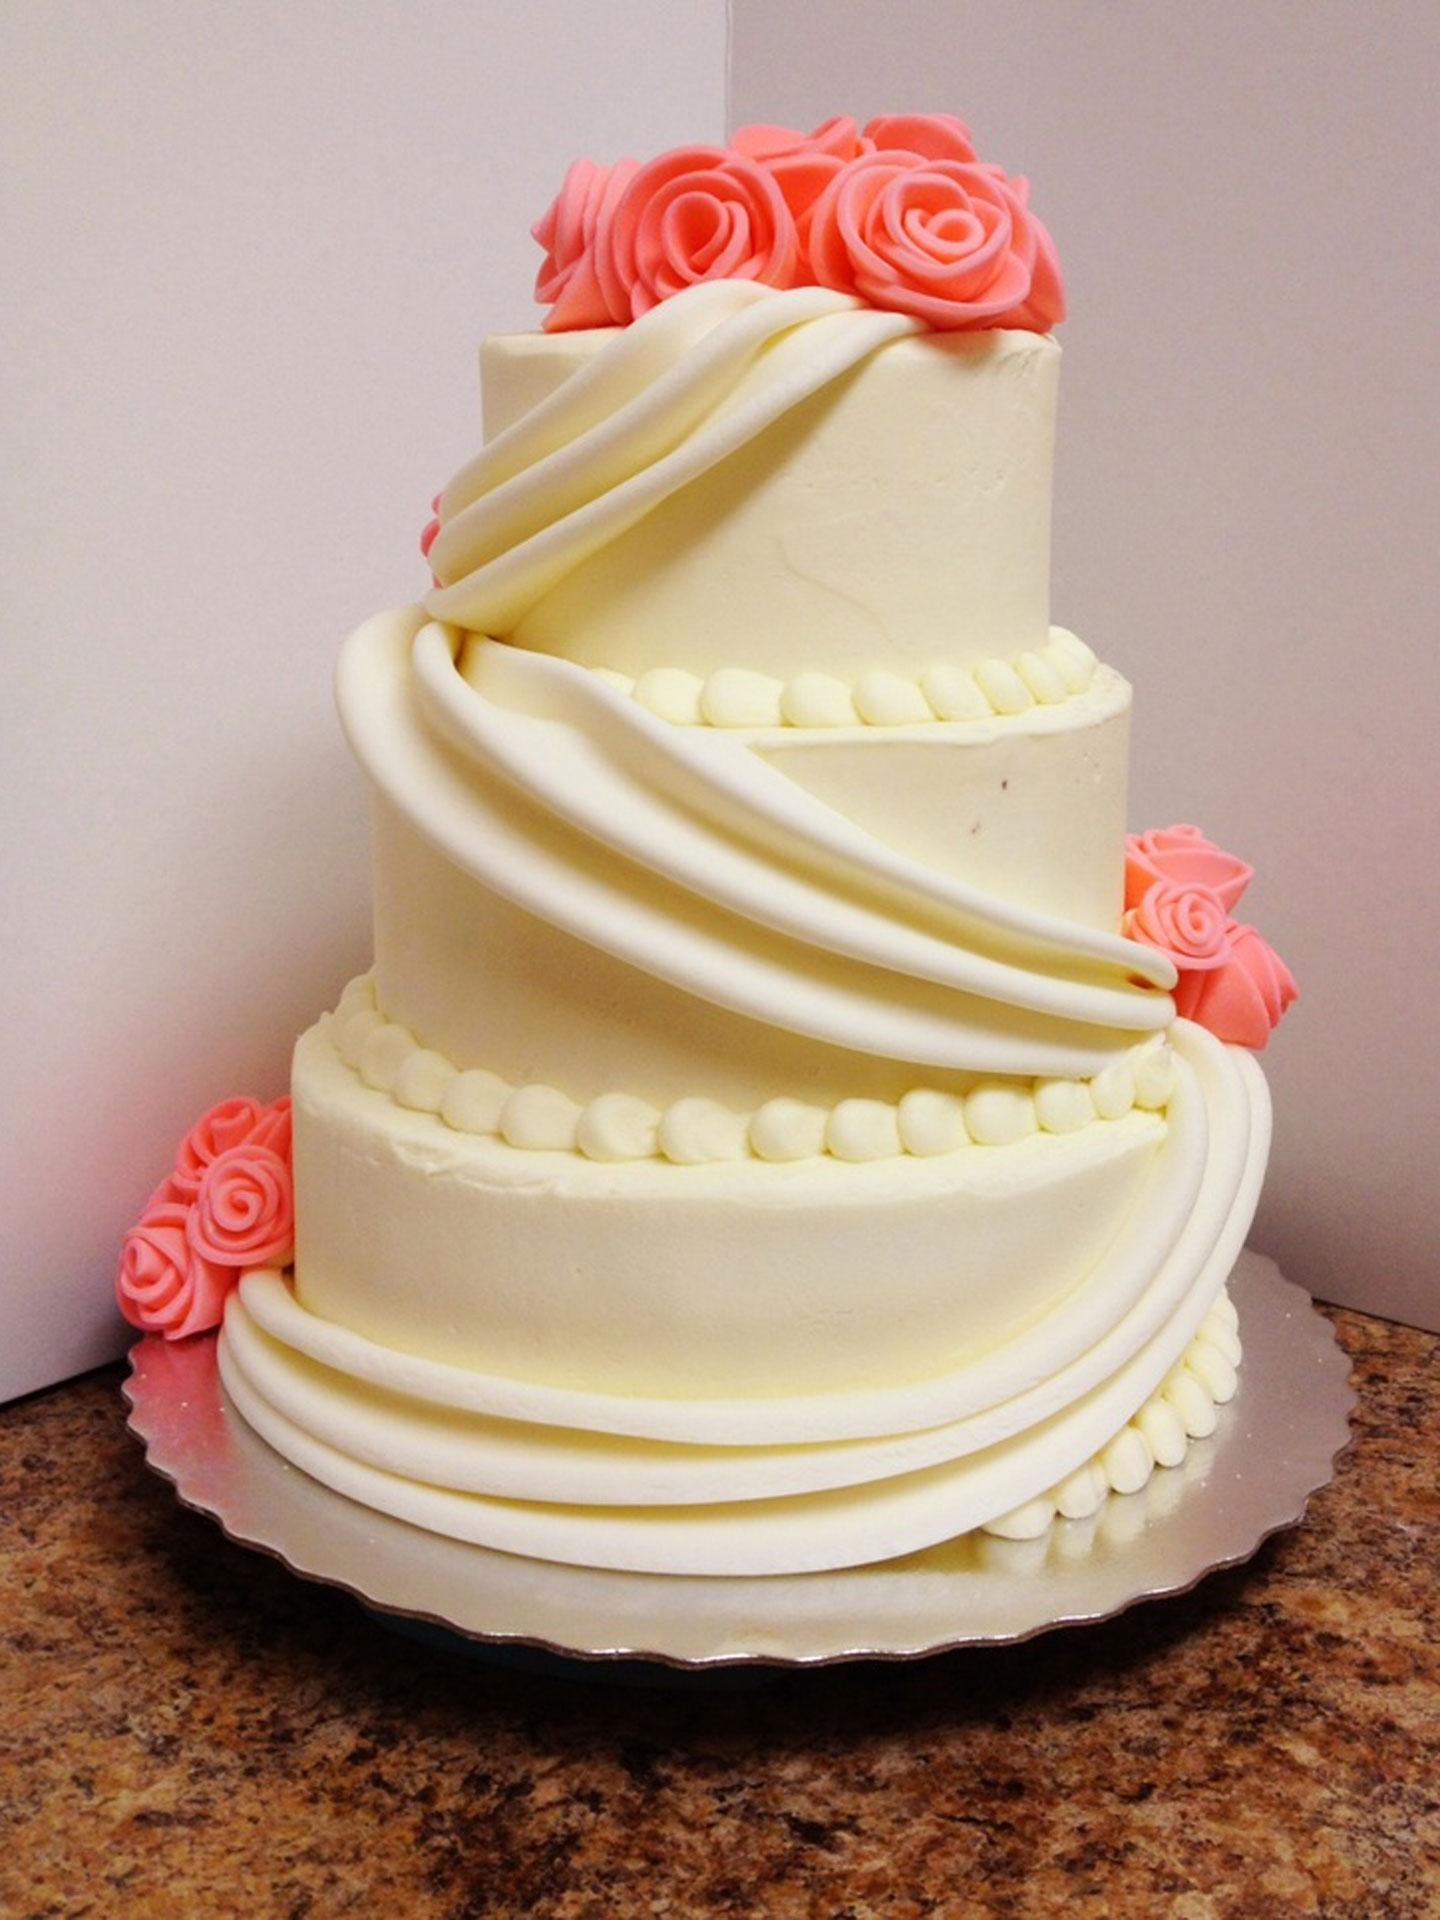 Cake Pictures For Quinceaneras : Best Quince Cake Ideas - Best Quince Cakes On Pinterest